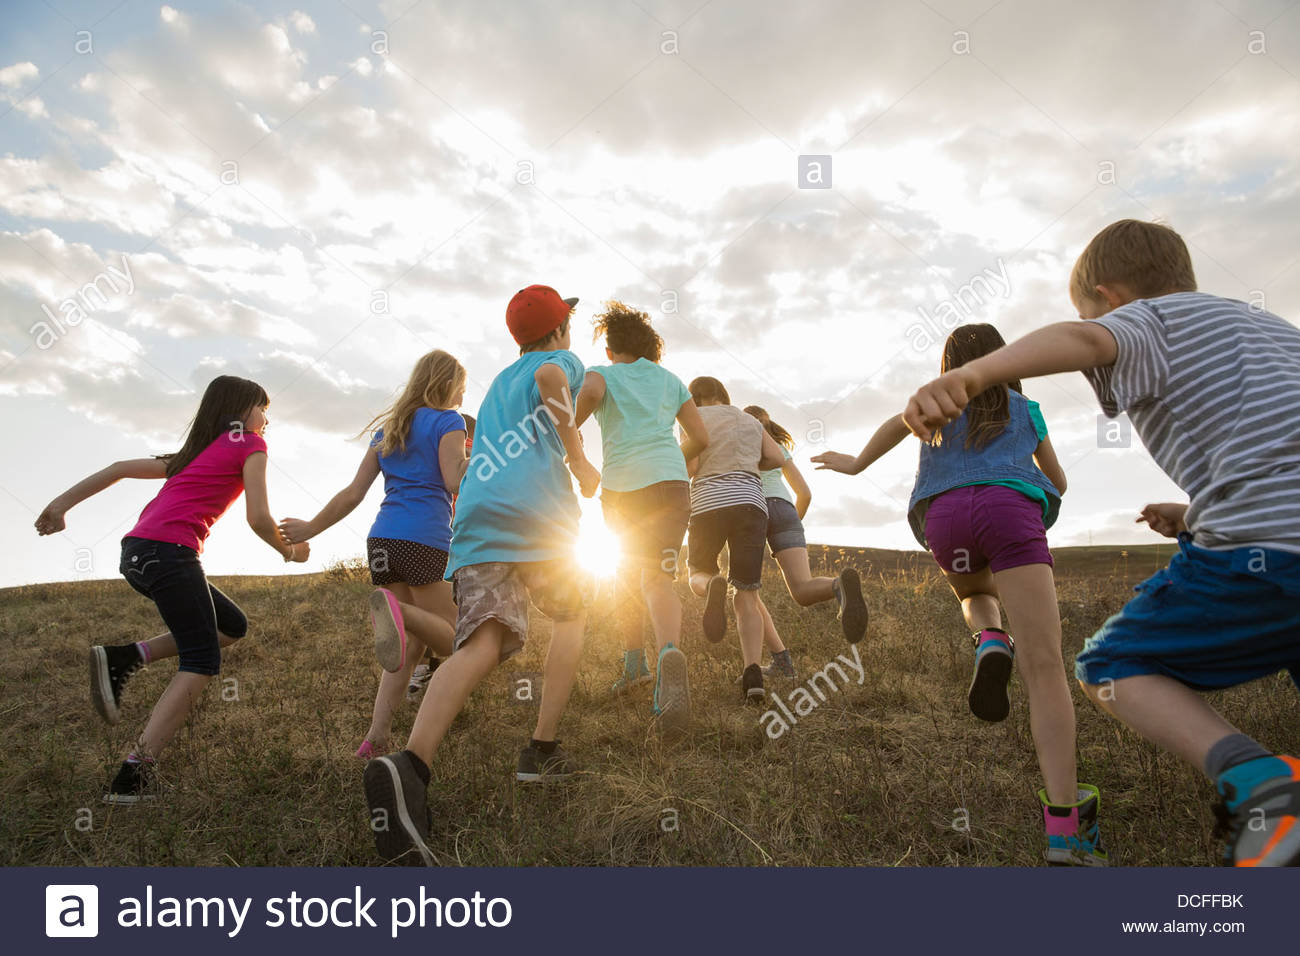 Rear view of children running uphill - Stock Image